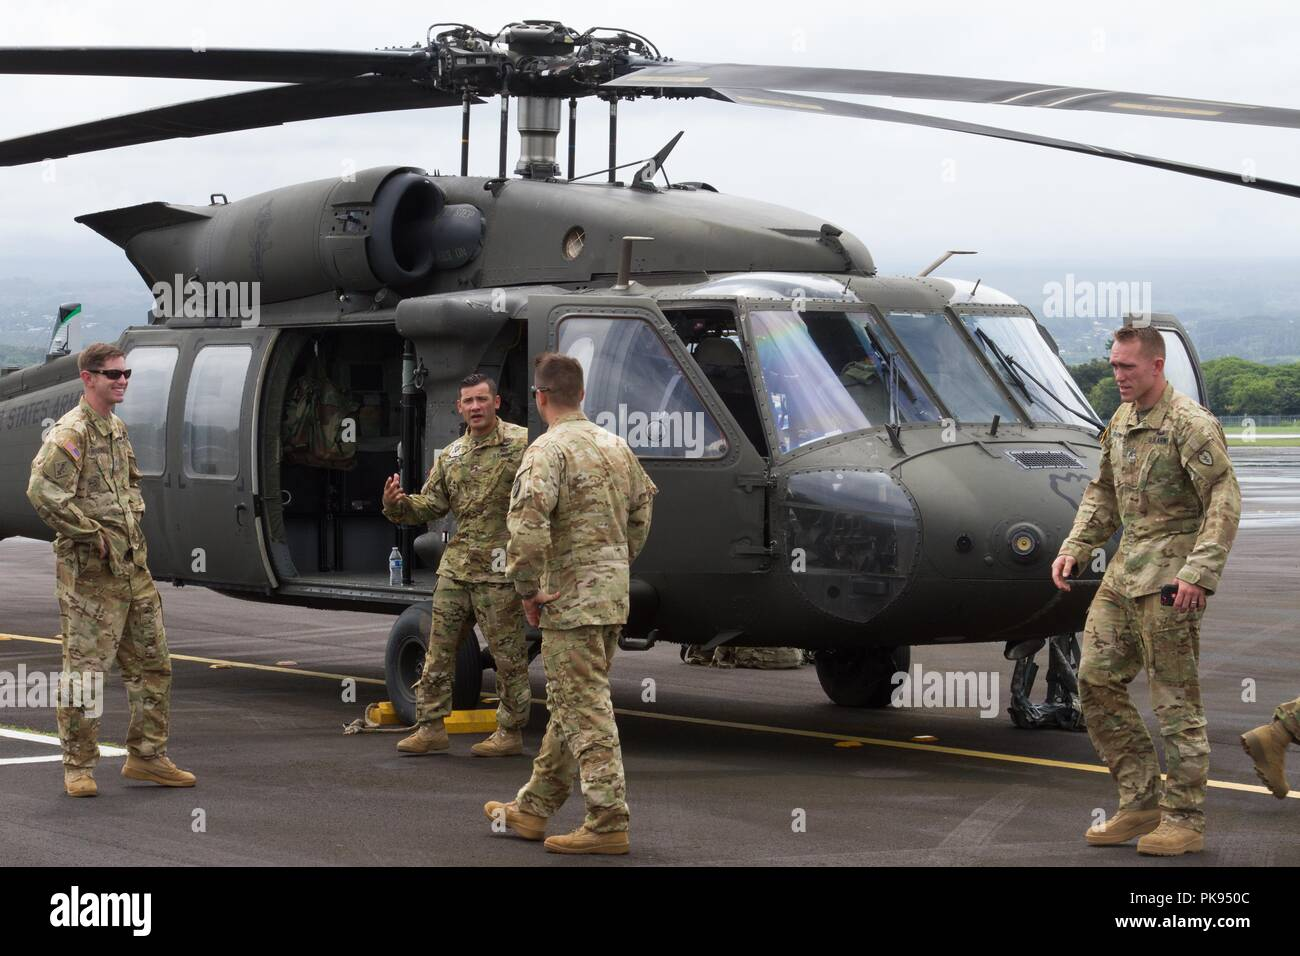 Soldiers from UH-60 Black Hawk flight crews, 25th Combat Aviation Brigade, 25th Infantry Division, Hawaii, prepare to provide Department of Defense support missions to the Federal Emergency Management Agency as part of Joint Task Force 5-0 on Aug. 26, 2018, August 26, 2018. This task force was established to respond to the effects of Hurricane Lane on the state of Hawaii. Local authorities and the State of Hawaii, through JTF 5-0, requested HH-60M Black Hawk helicopters with hoist capability to assist local authorities with recovery operations on the Isle of Hawaii. JTF 5-0 is a joint task for - Stock Image